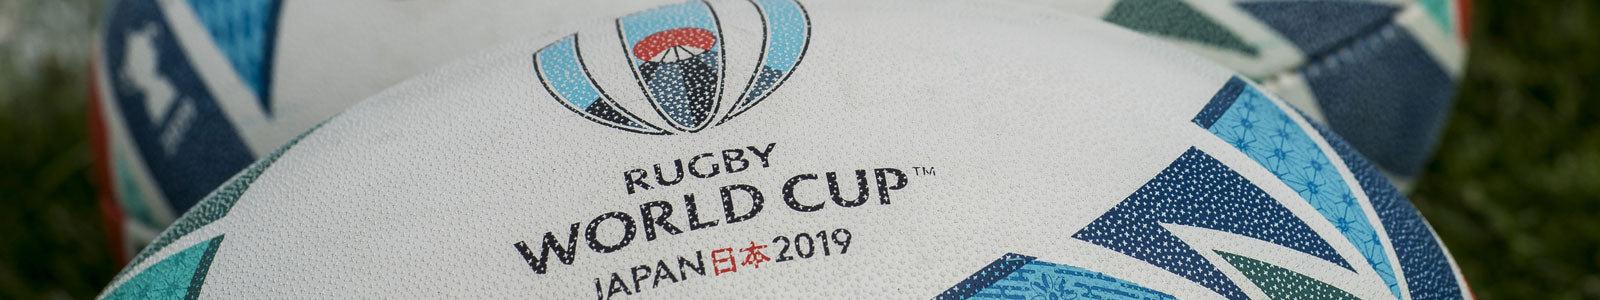 Rugby World Cup 2019 Shirt Watch - All The RWC 2019 Replica Kit Released So Far